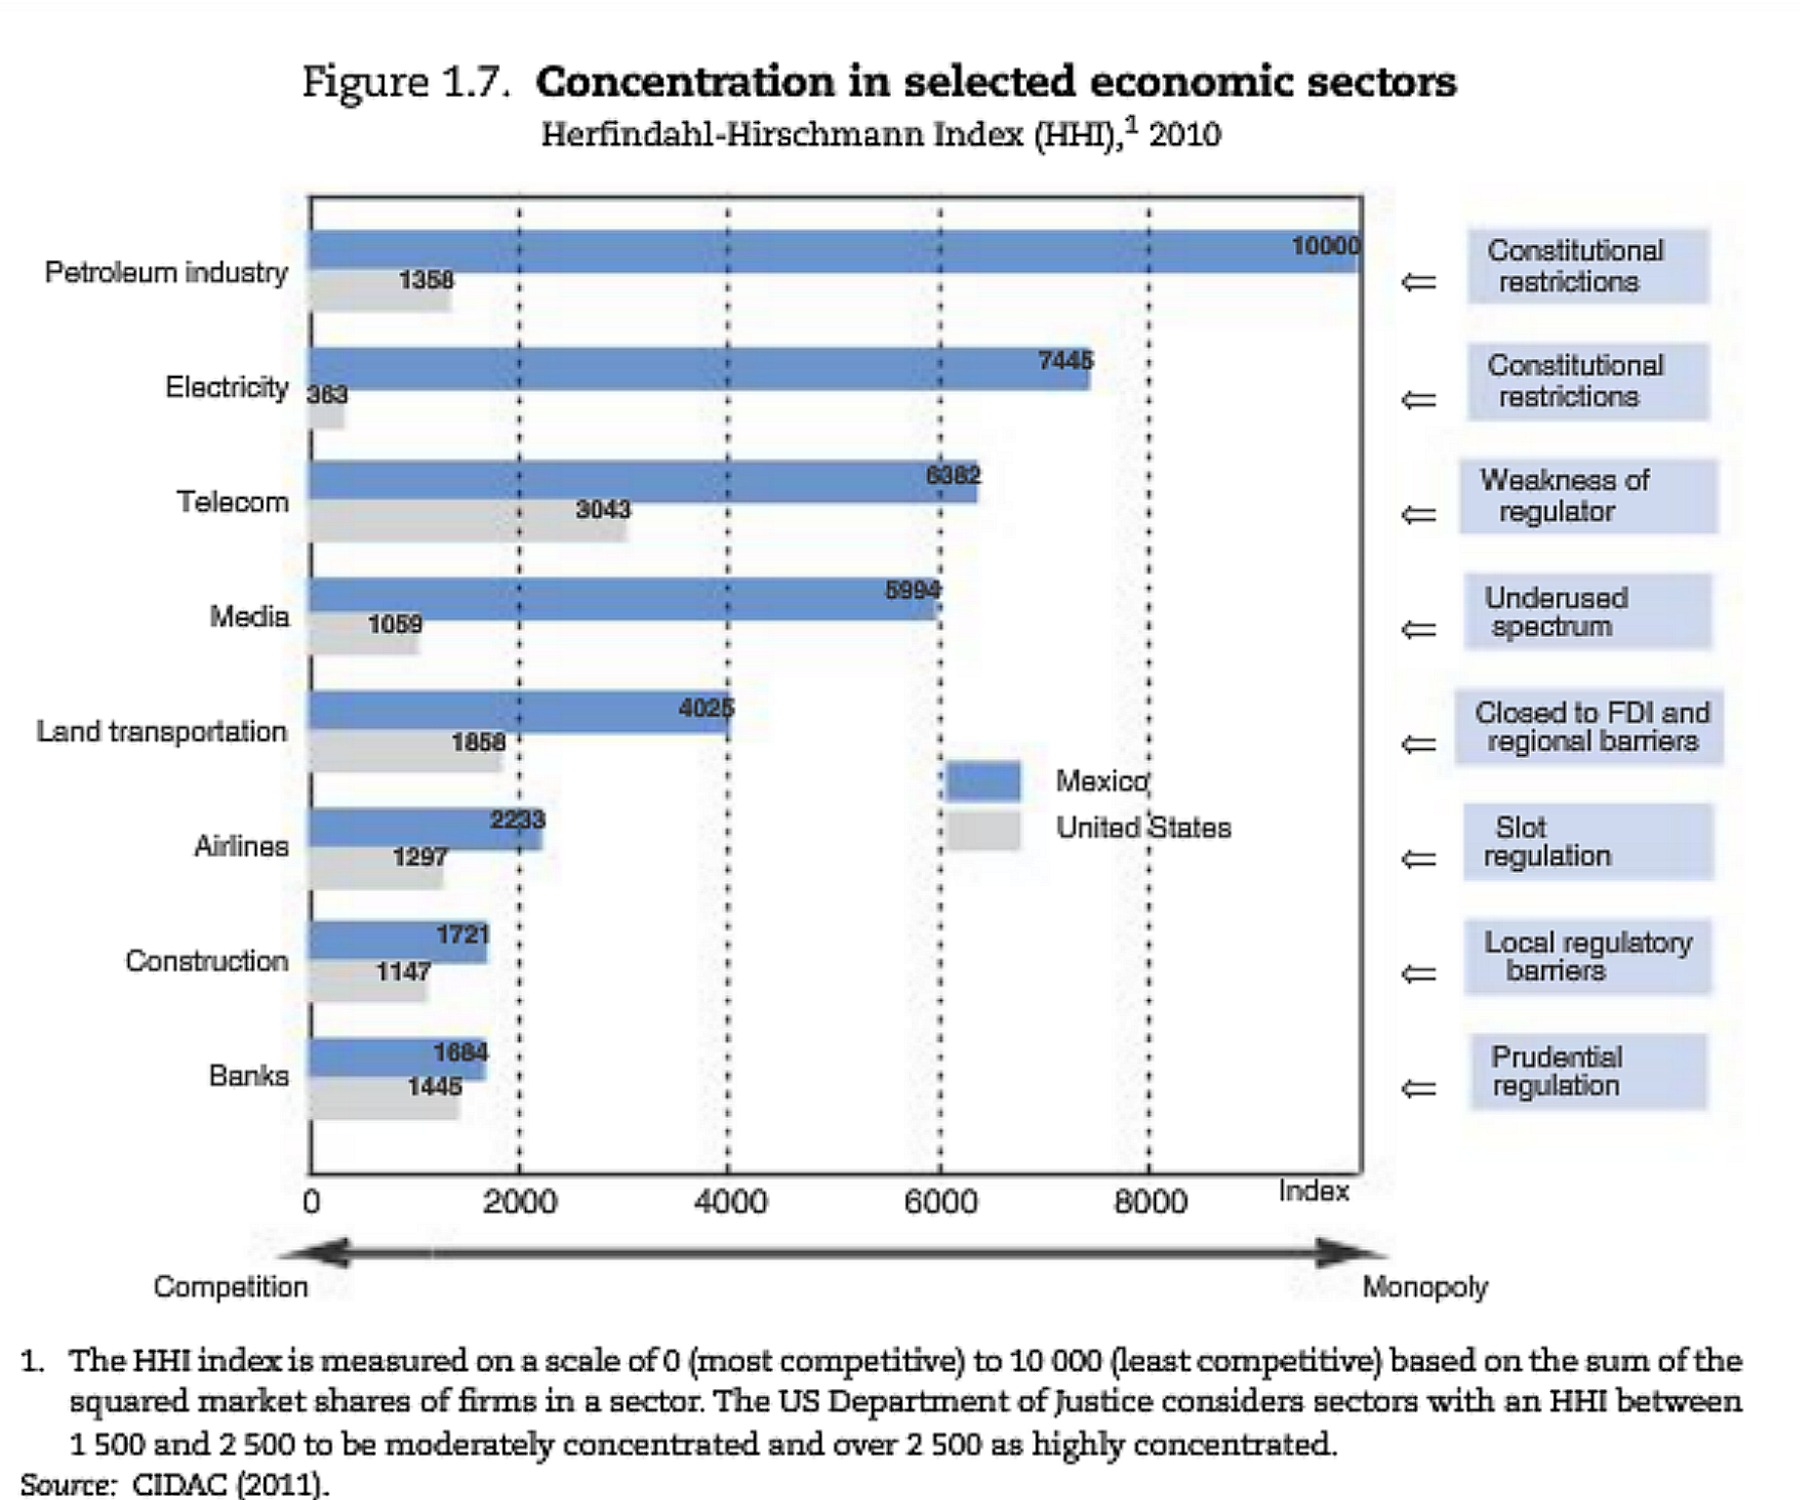 Concentration in selected economic sectors